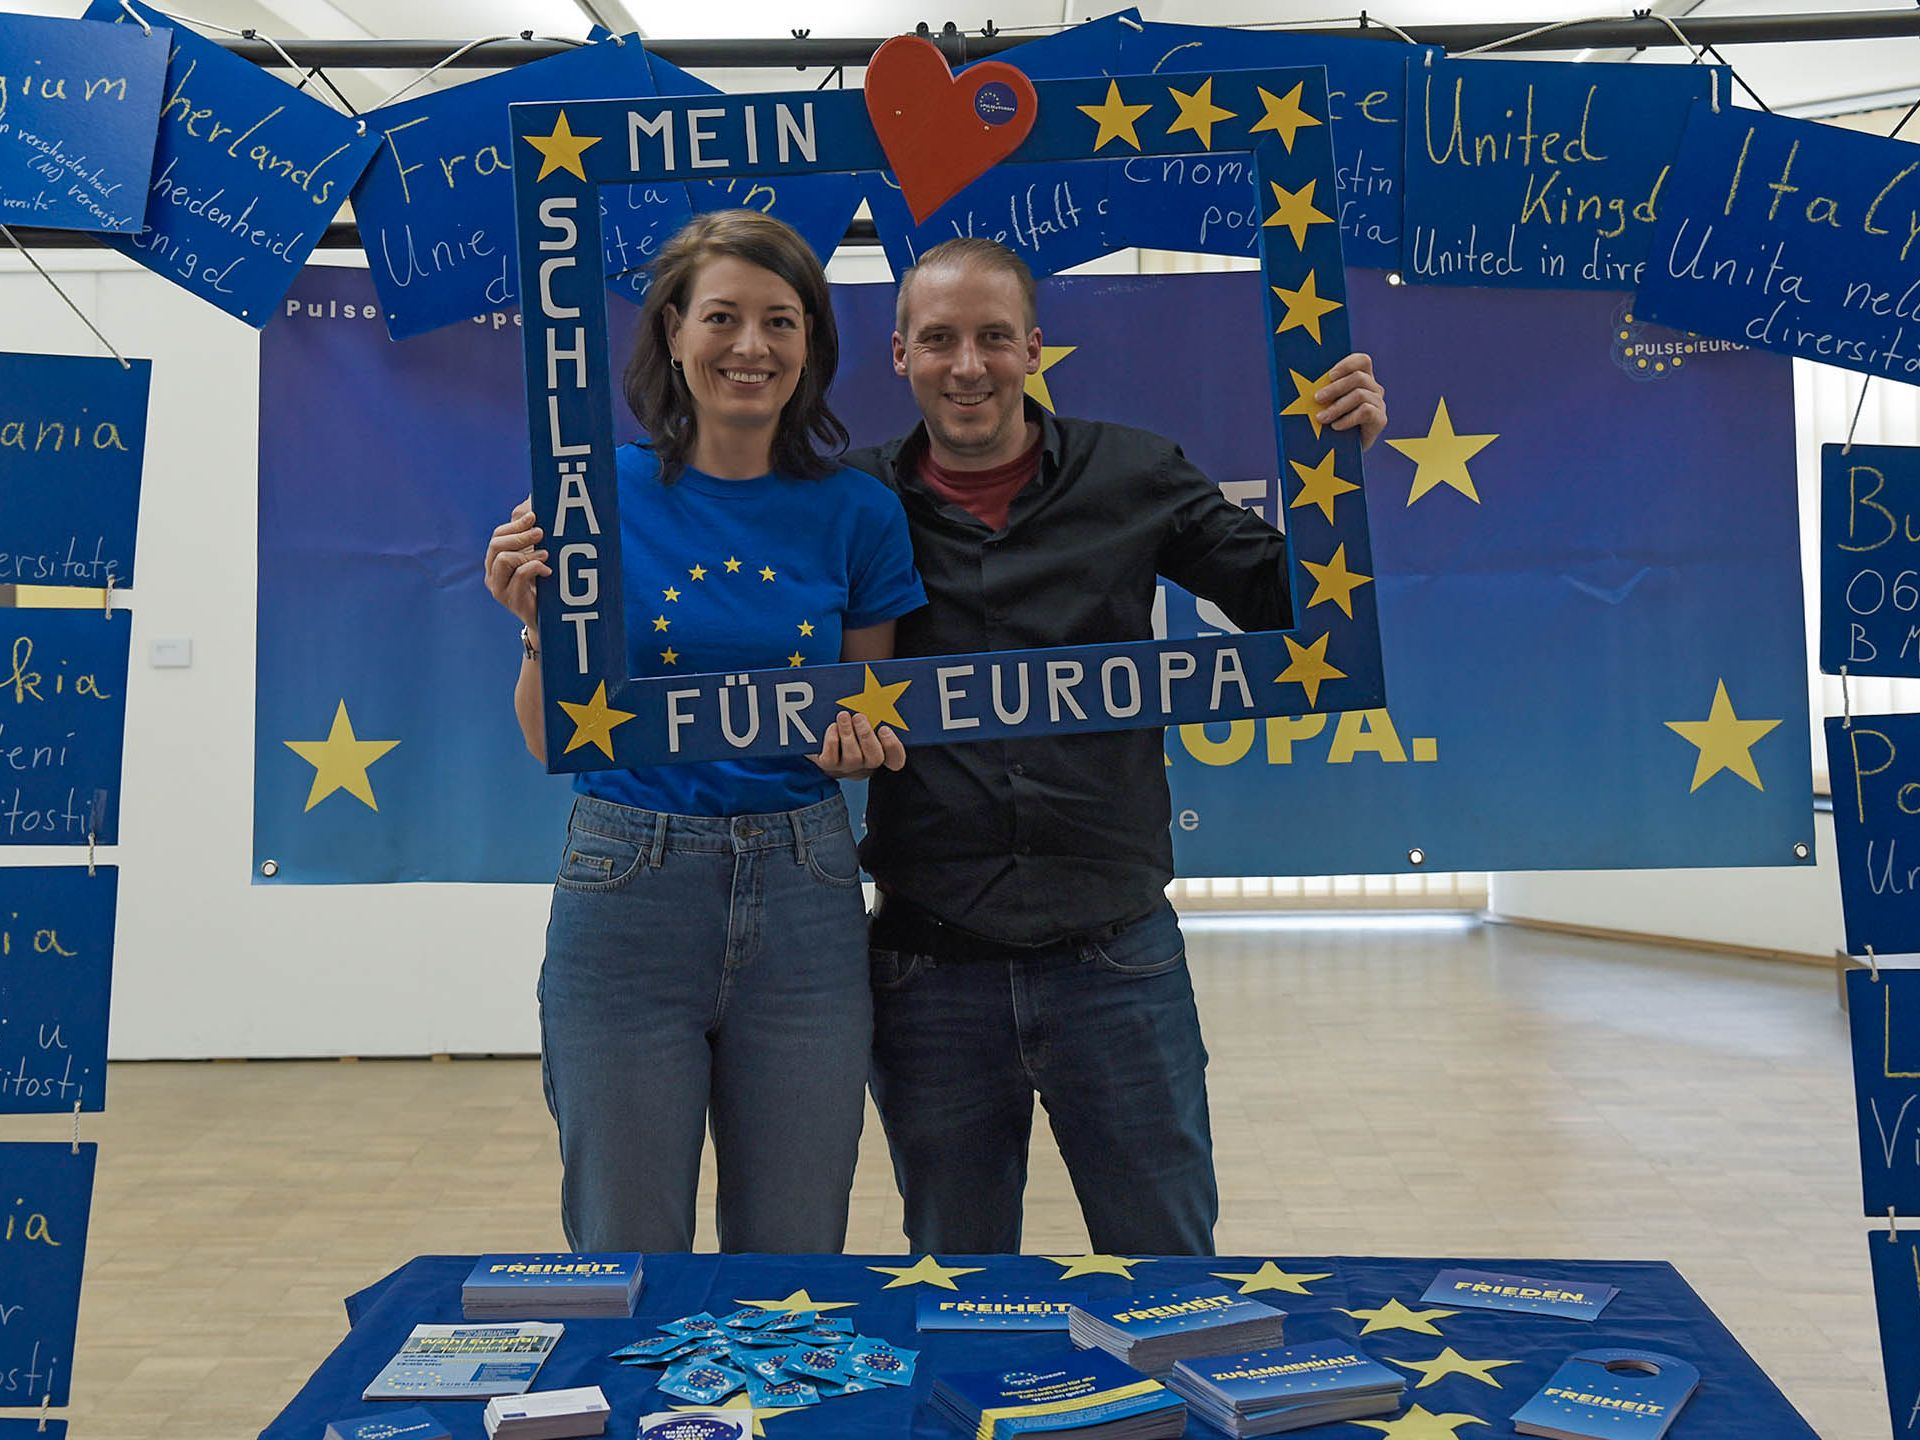 Photo campaign in Gelsenkirchen in the run-up to the European elections 2019, Photo: RVR / Petra Hartmann